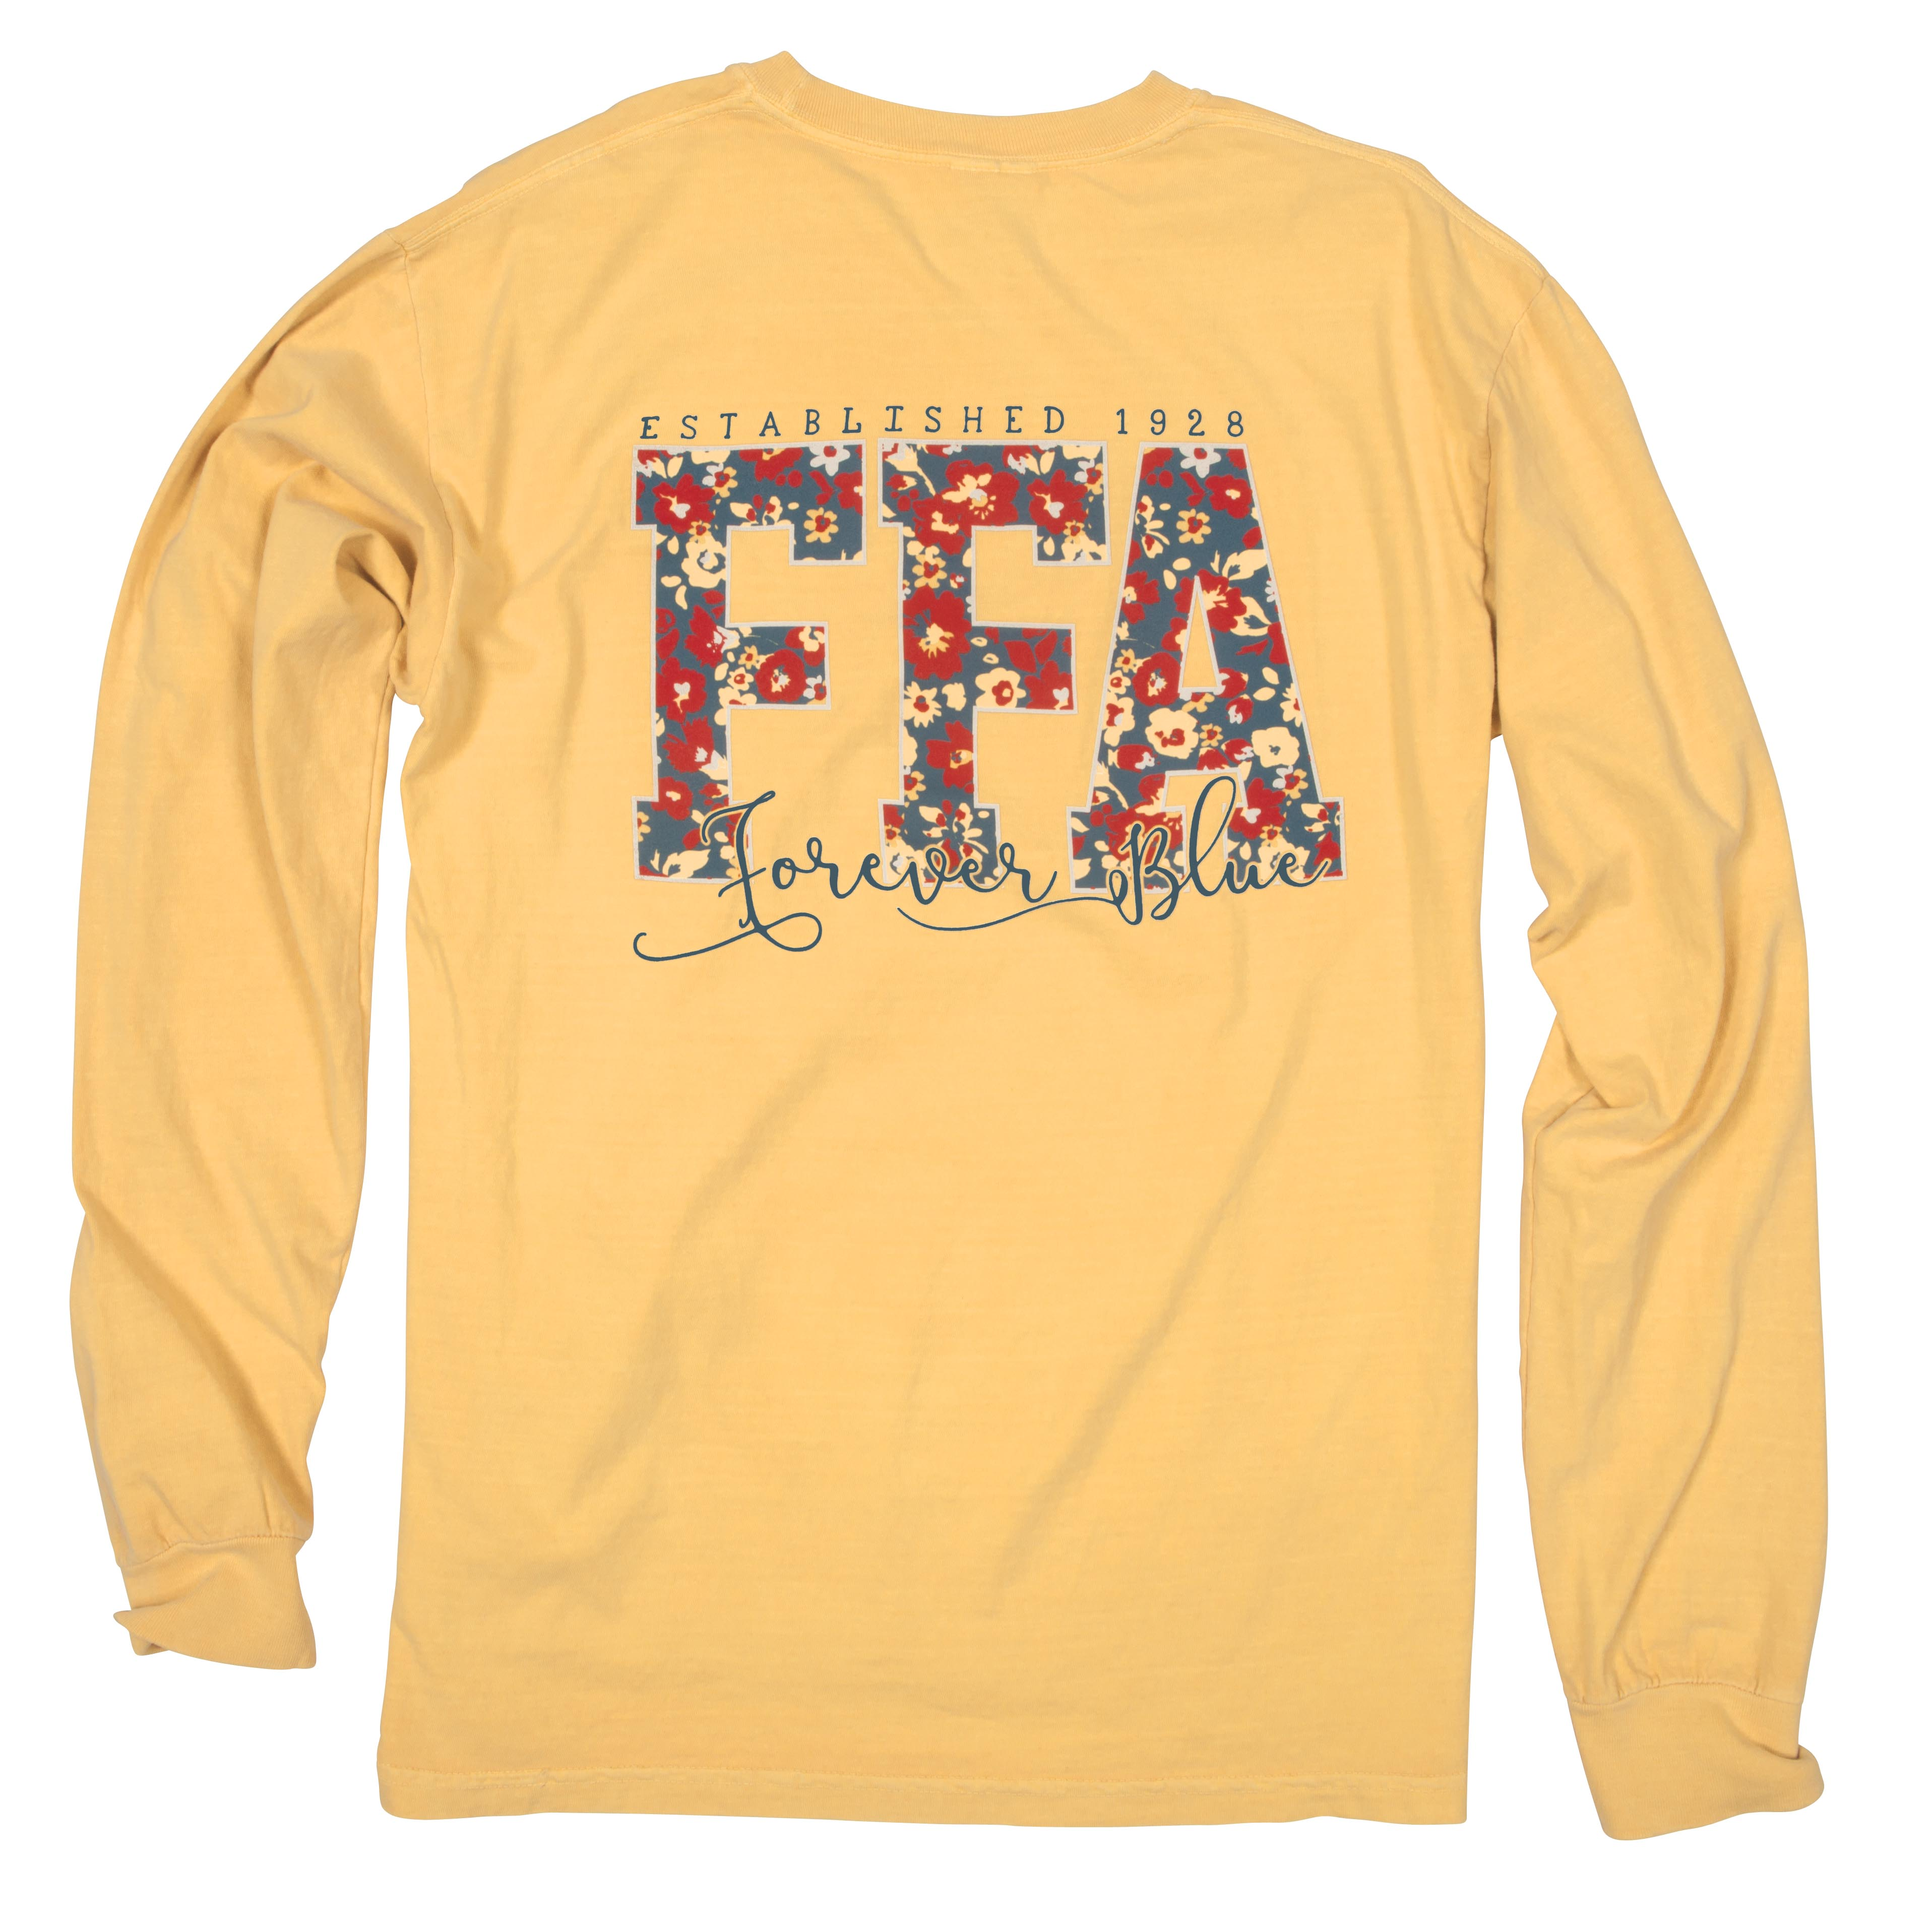 03af25f6 L/S FFA FLORAL LETTERS TEE